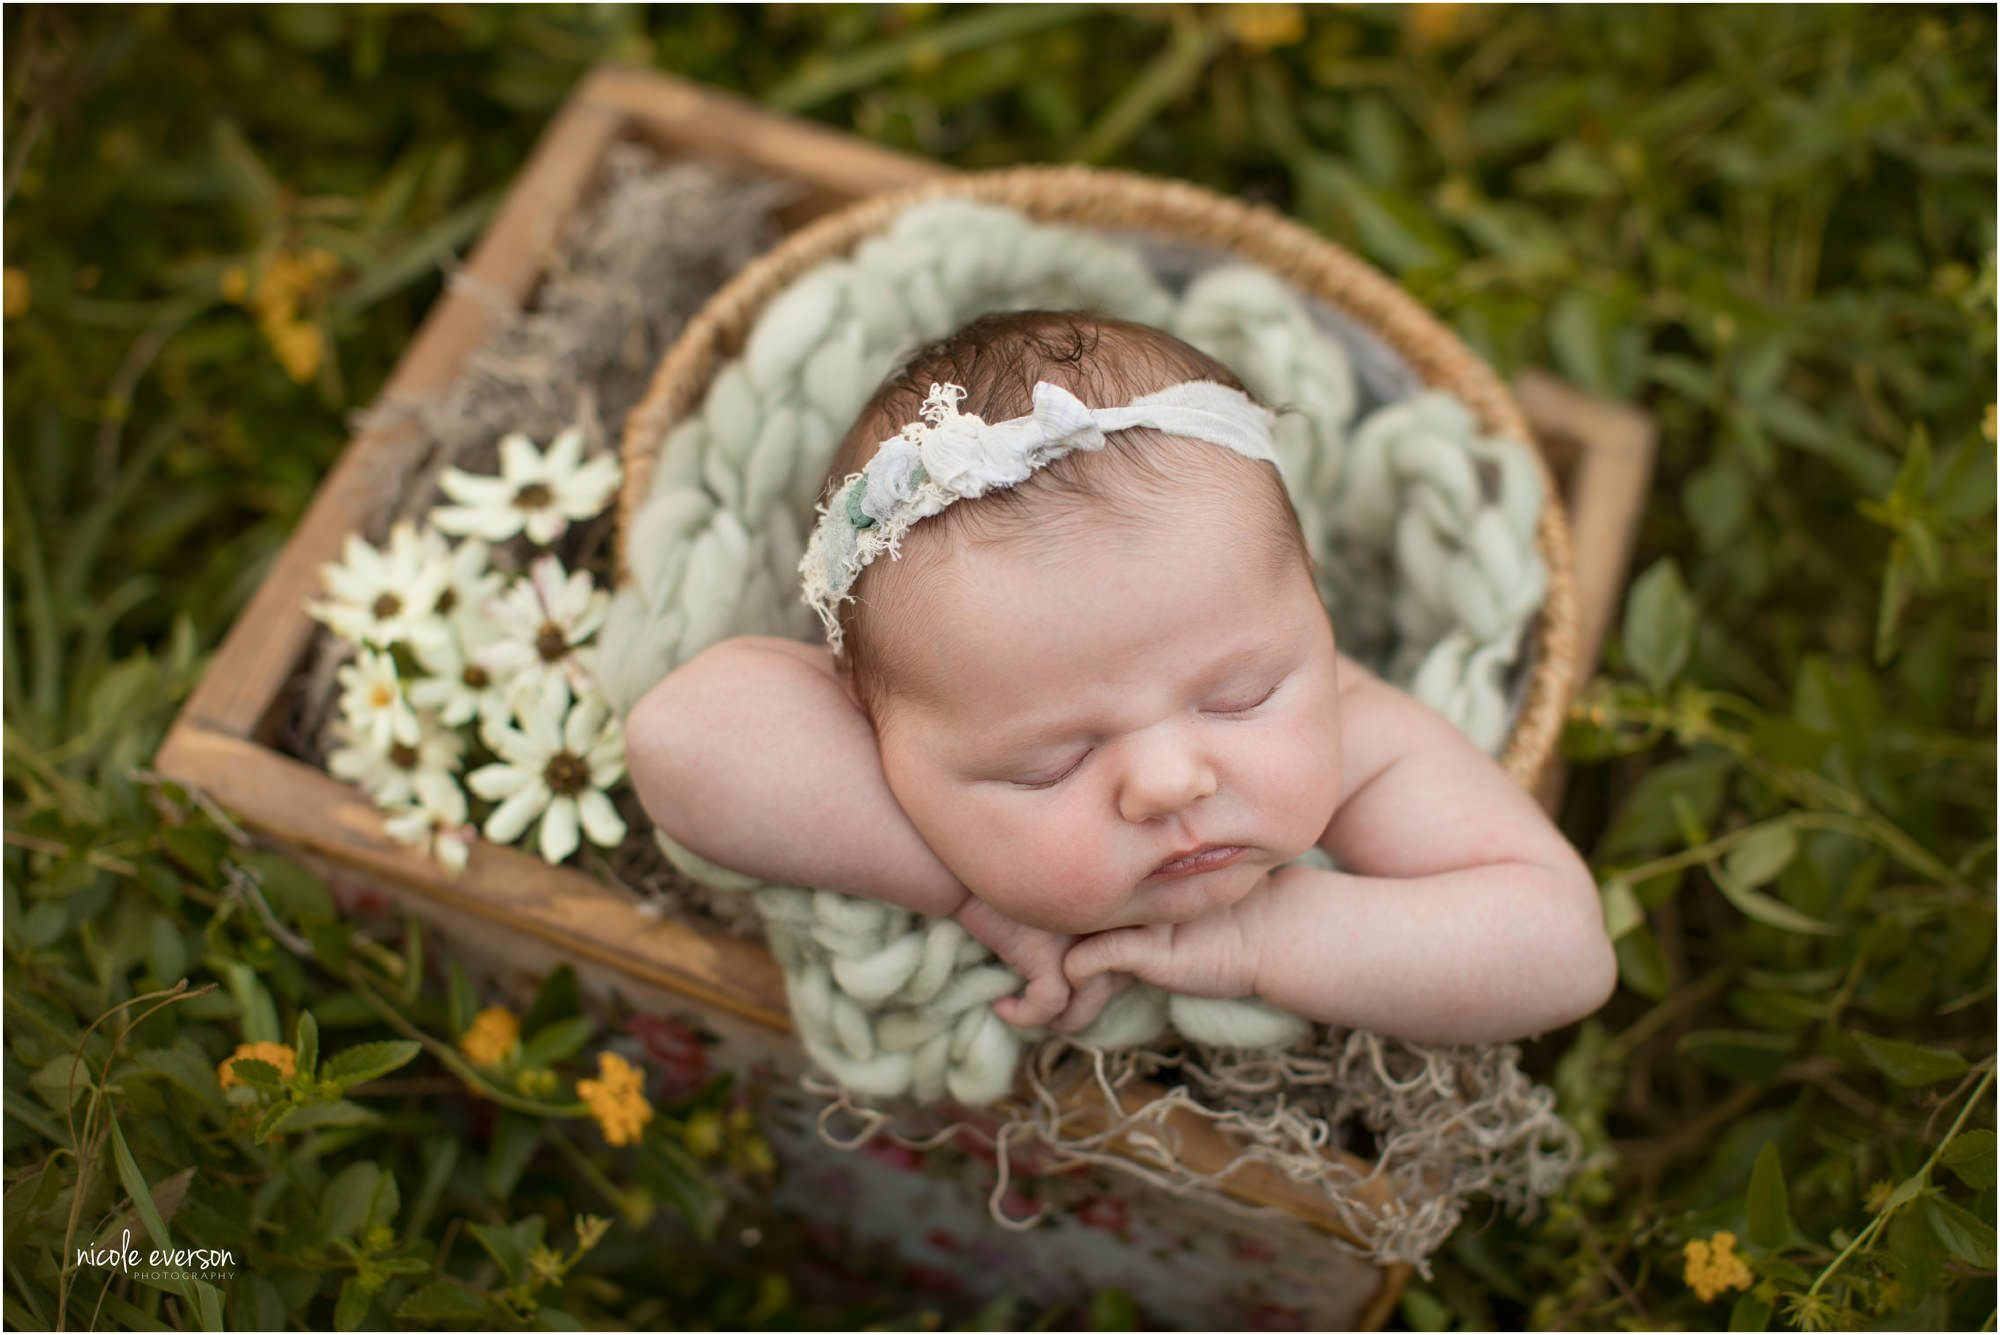 newborn photographed outside in flowers